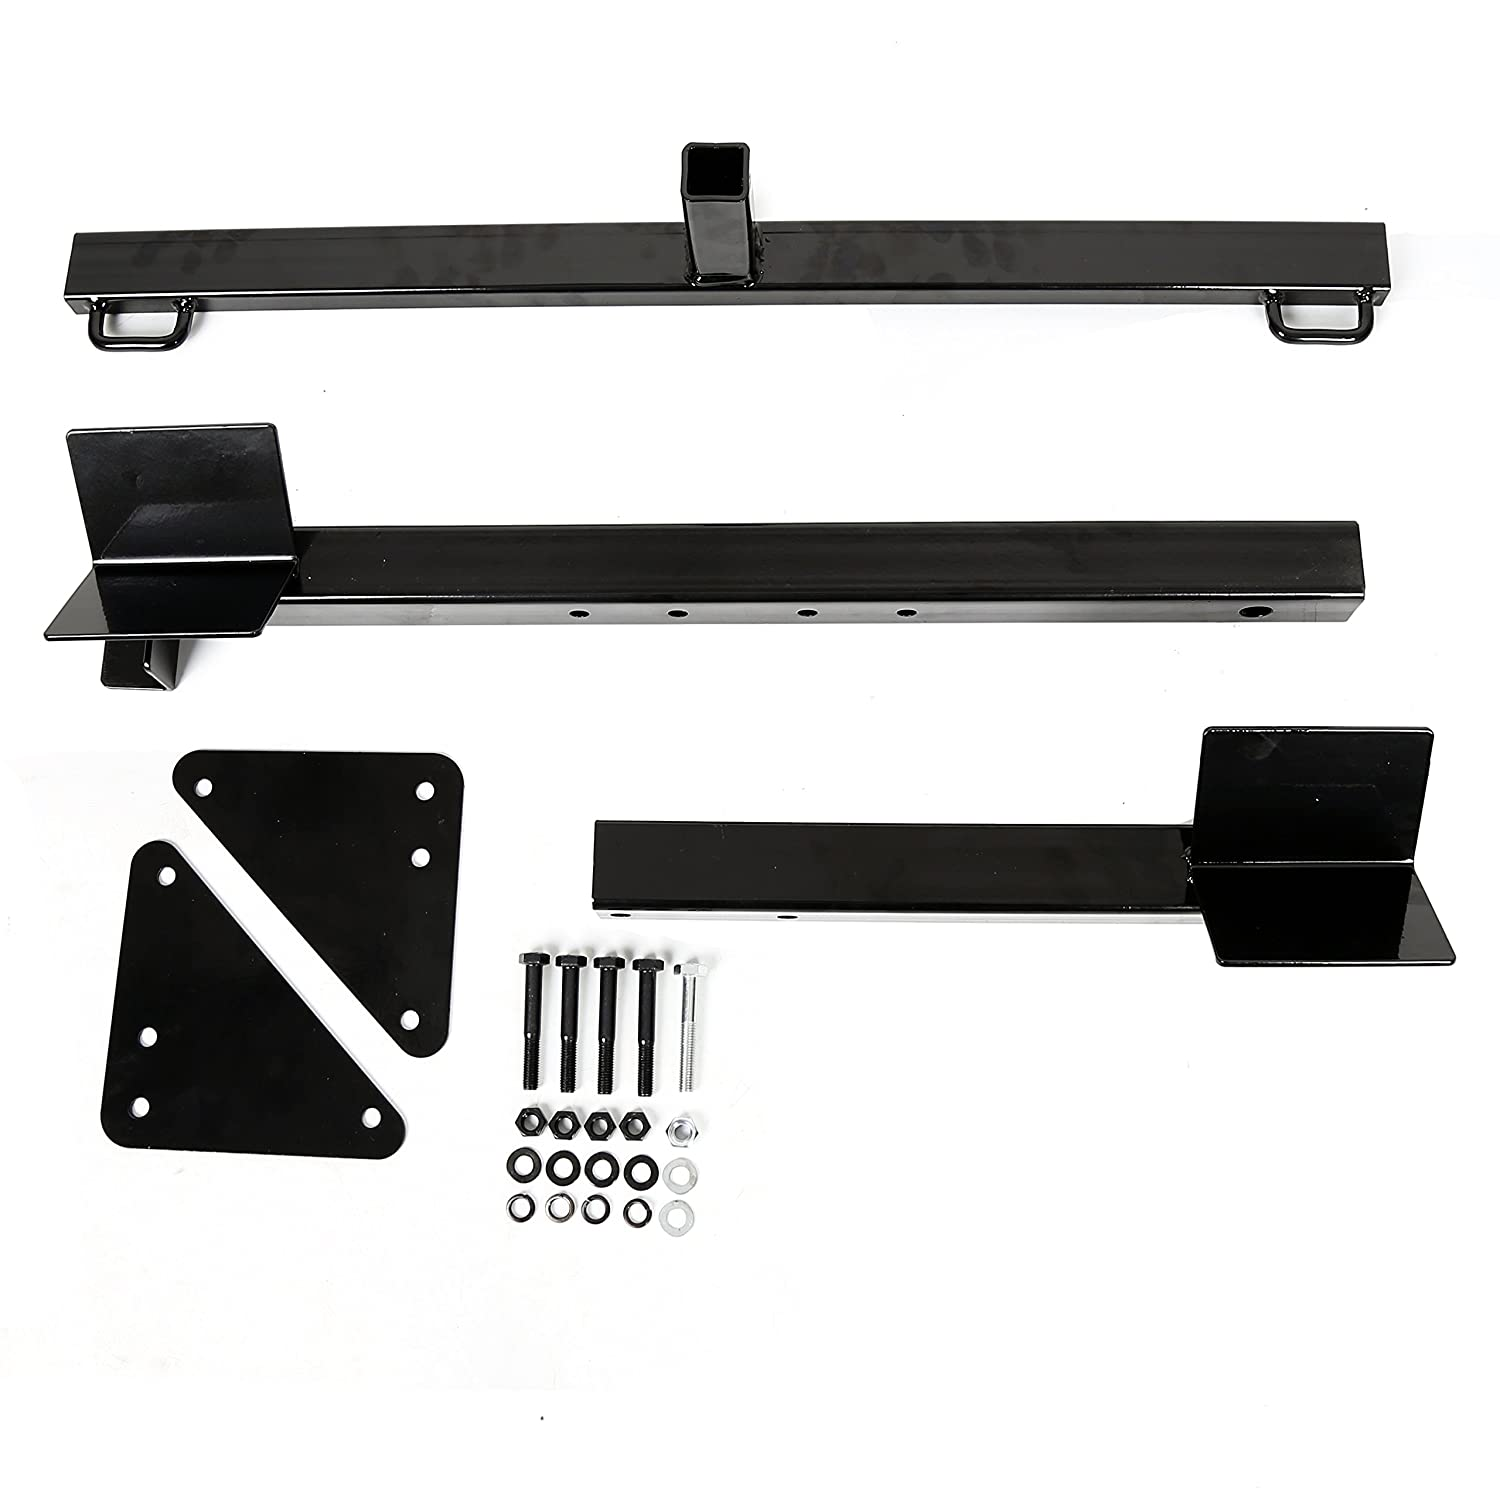 ECOTRIC Motorcycle Trailer Carrier Tow Hitch Rack Motorcycle Carrier